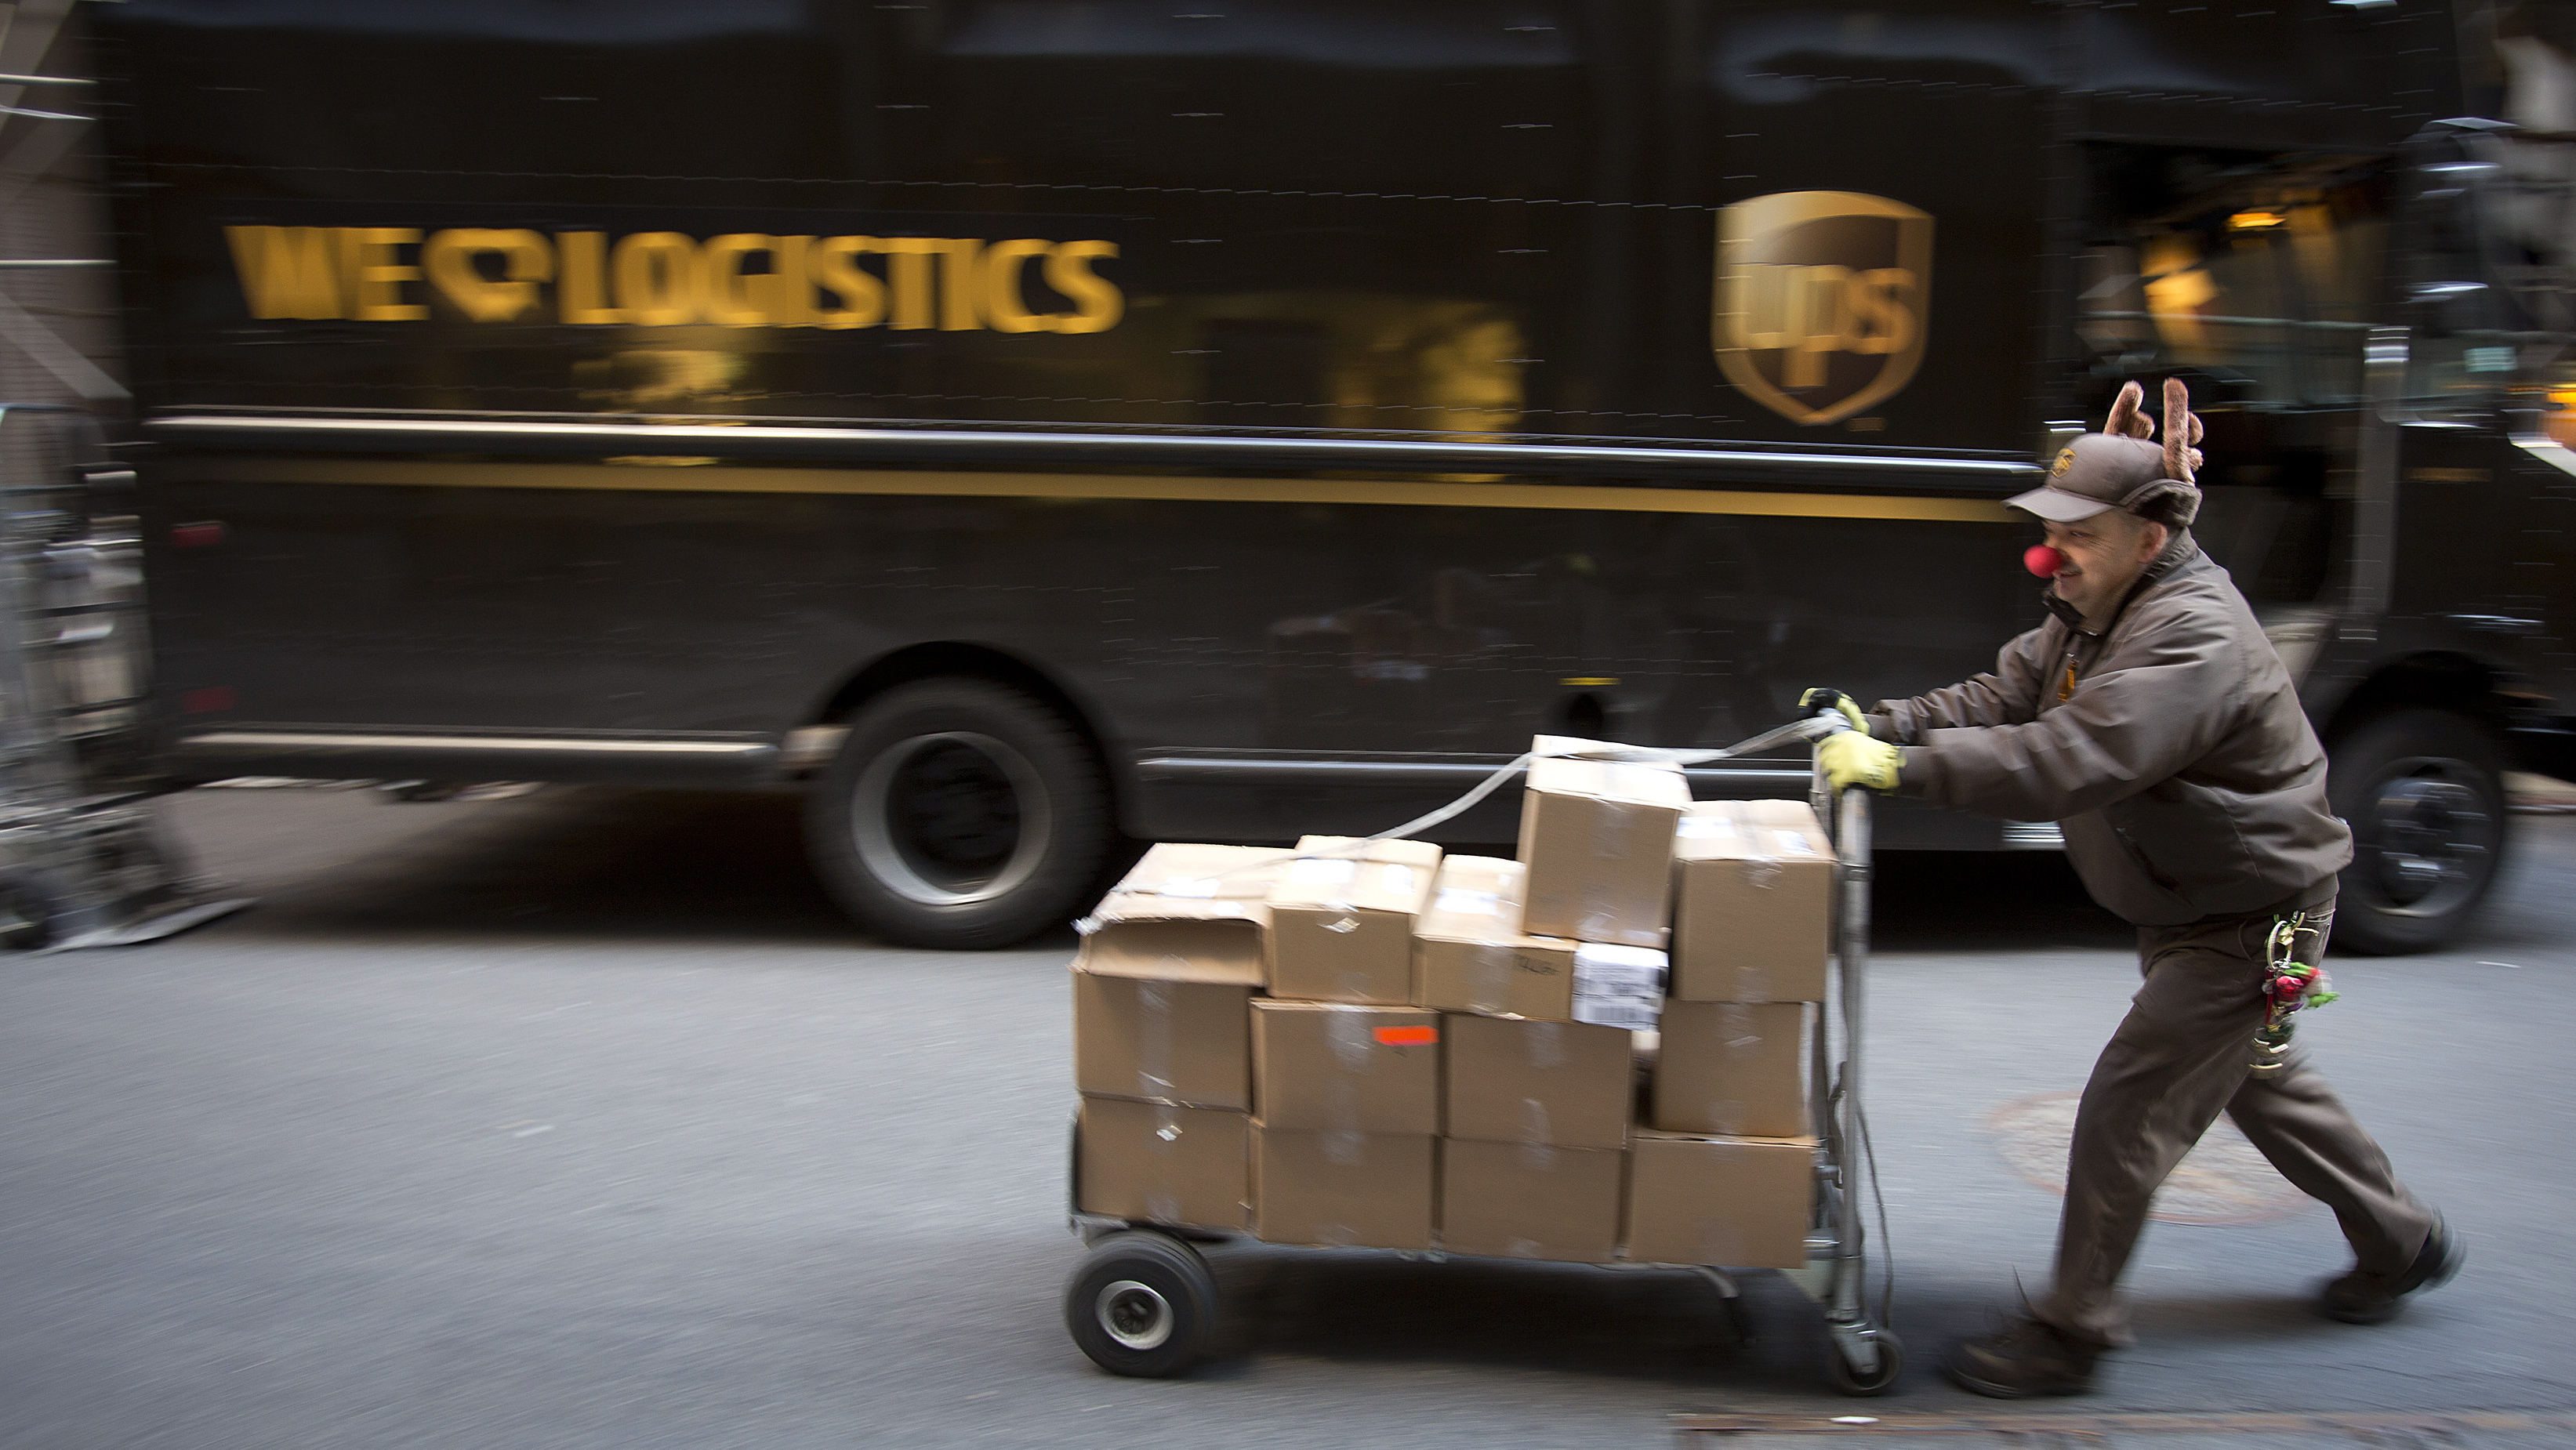 Apologies, Promises From UPS And FedEx About Delivery Delays